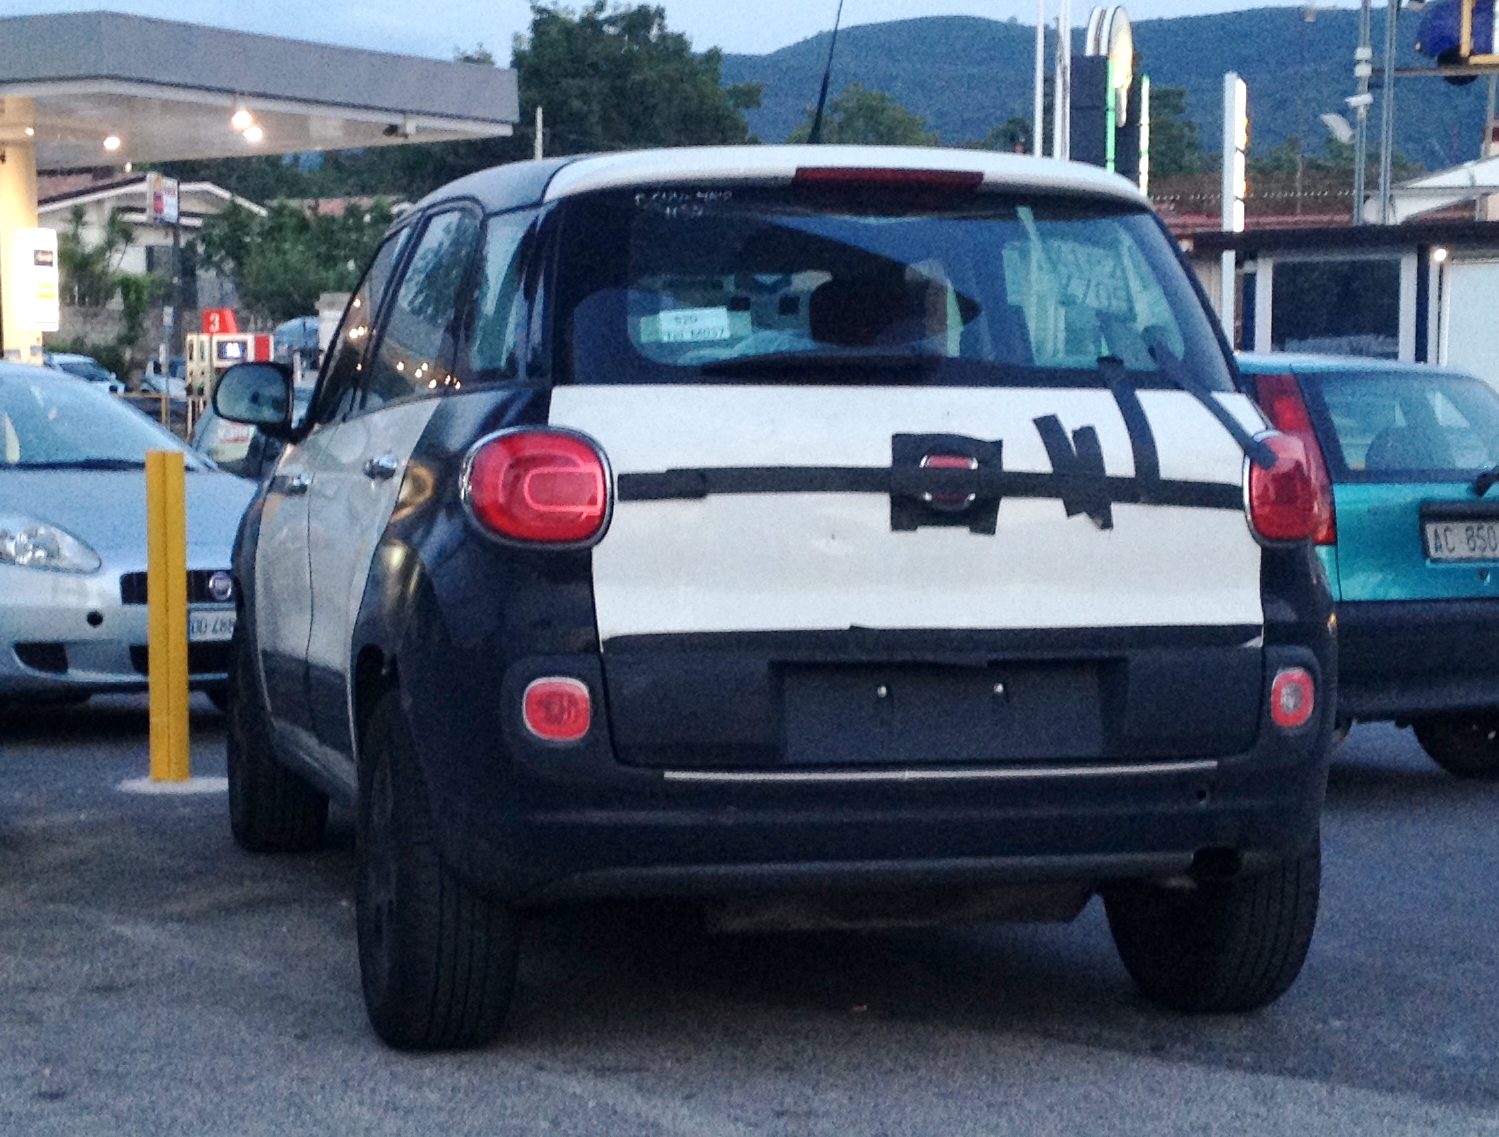 mule romeos pics as first spy crossover alfa looking news weird ever testing show test romeo fiat s continues